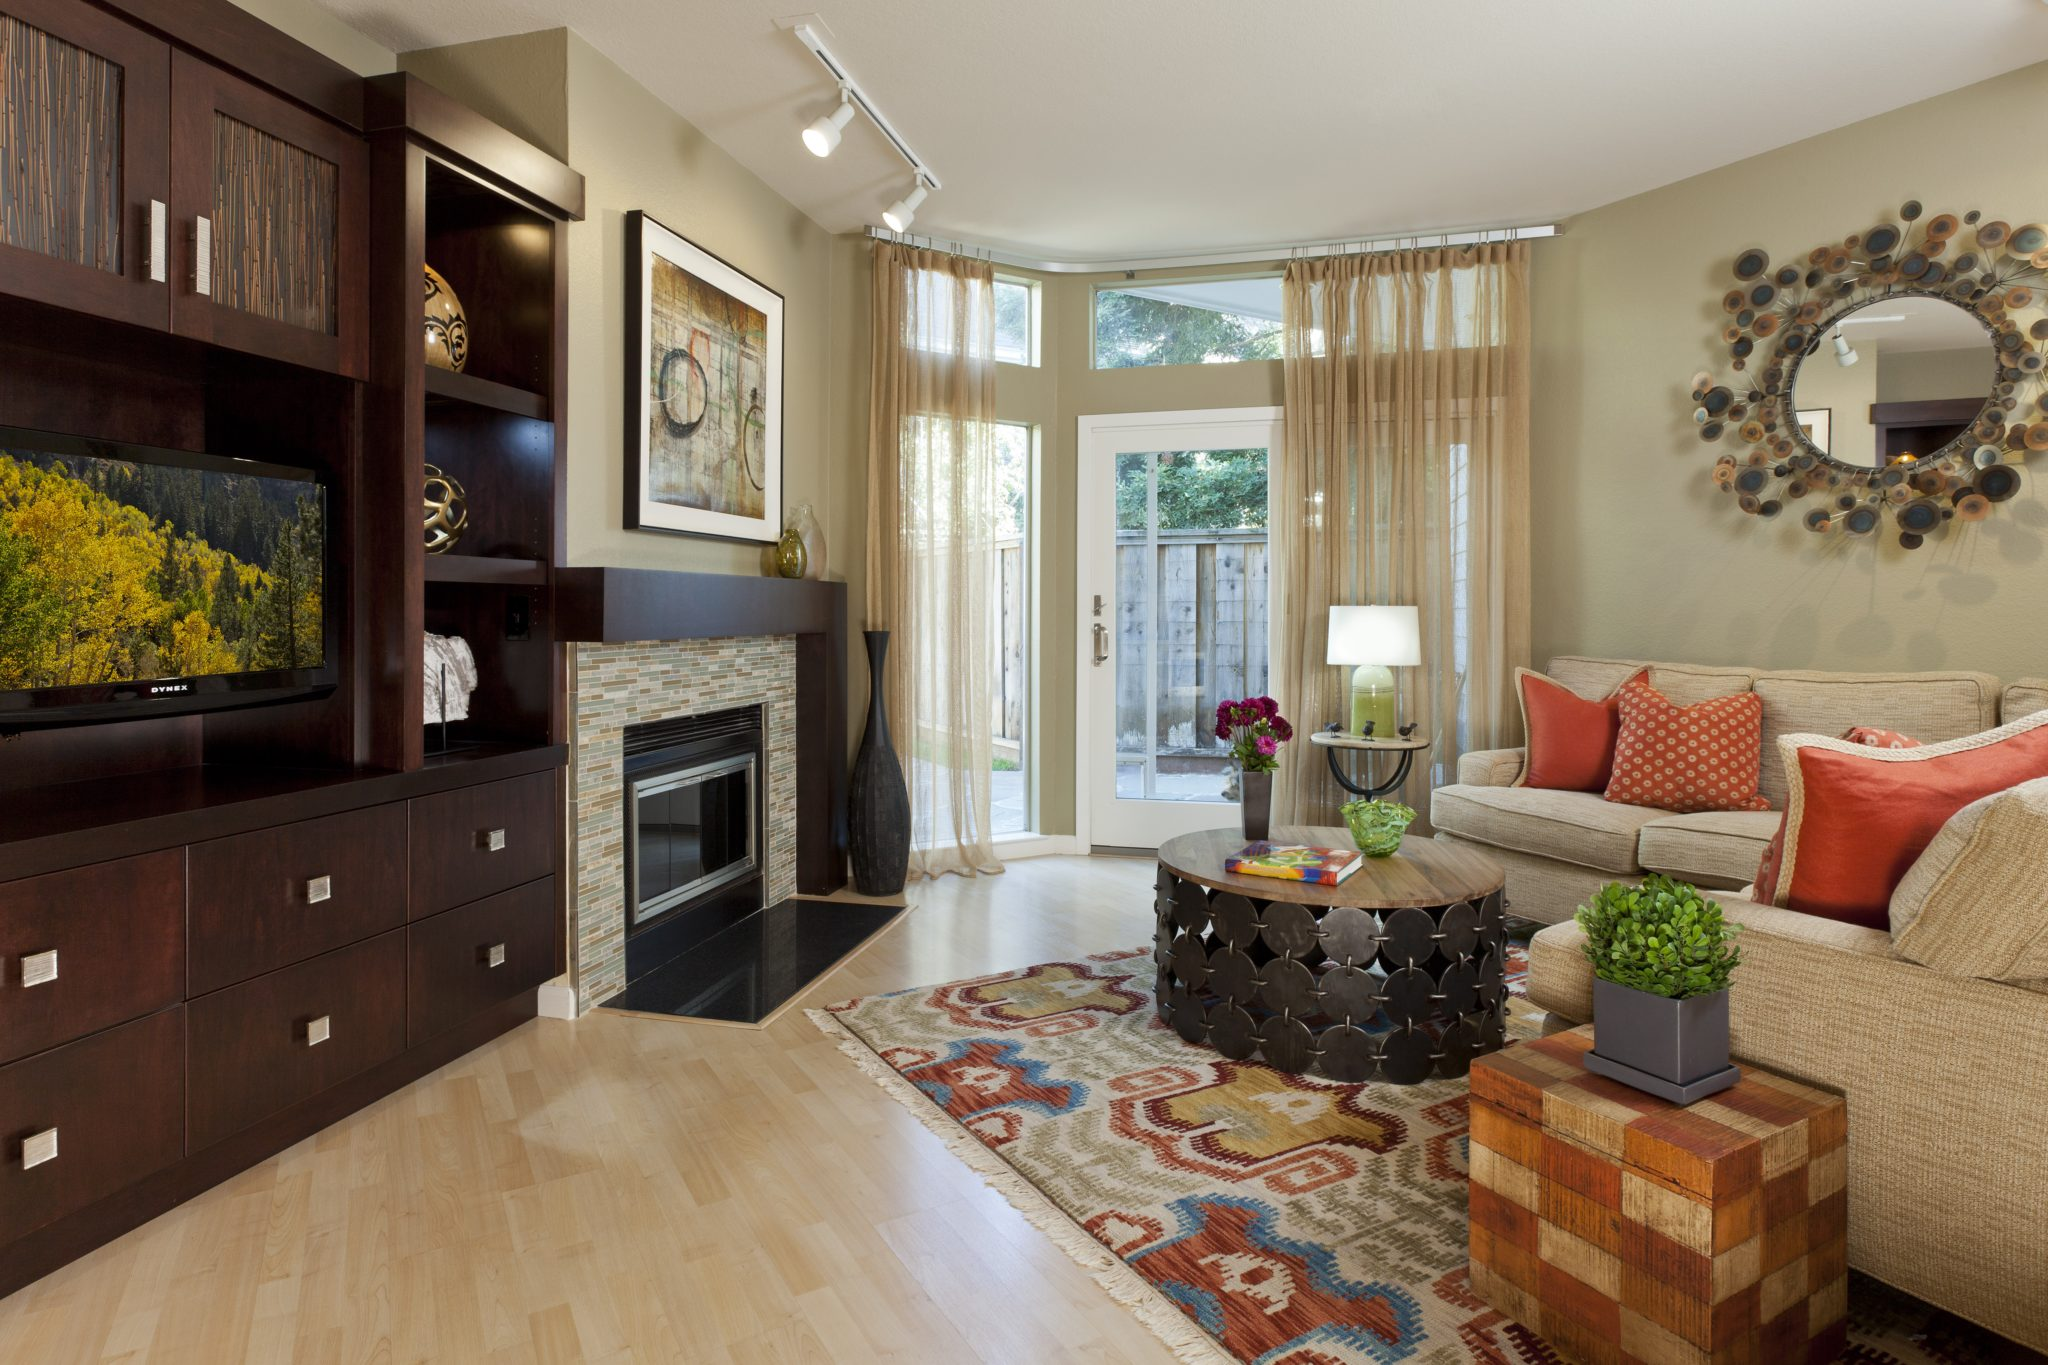 Family room showcases custom built-in and textured upholstery with ikat area rug by Alison Whittaker Design